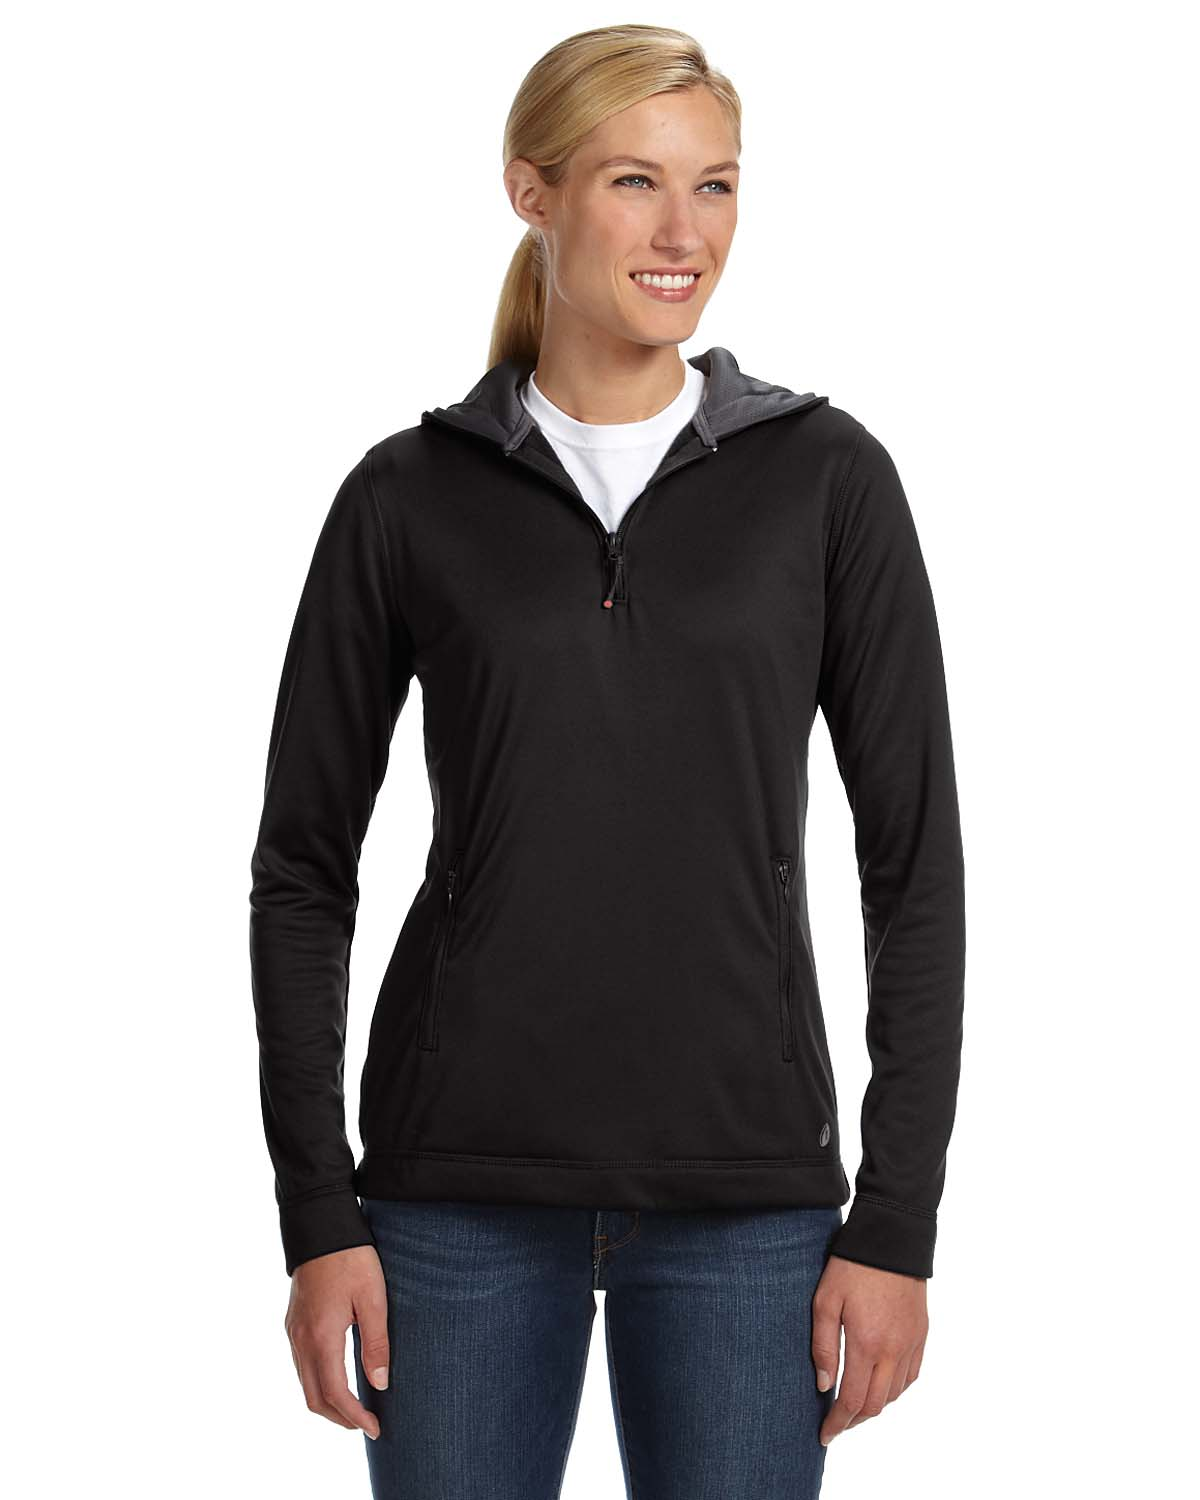 Russell Athletic Ladies Tech Fleece Quarter-Zip Pullover Hood